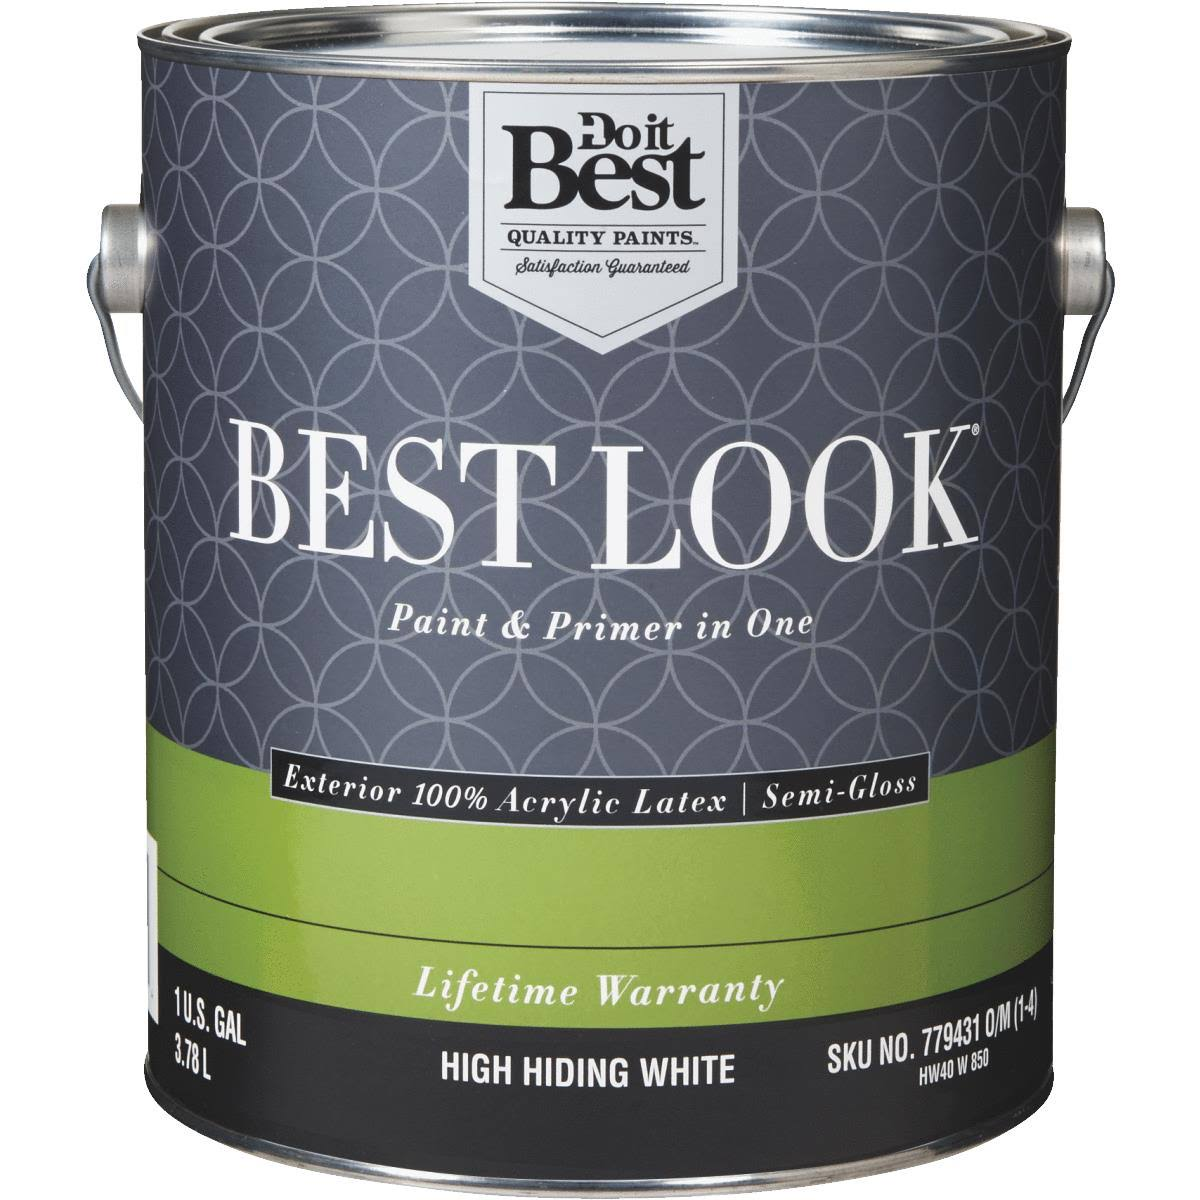 - HW40W0850-16 Best Look 100% Acrylic Latex Paint & Primer in One Semi-Gloss Exterior House Paint